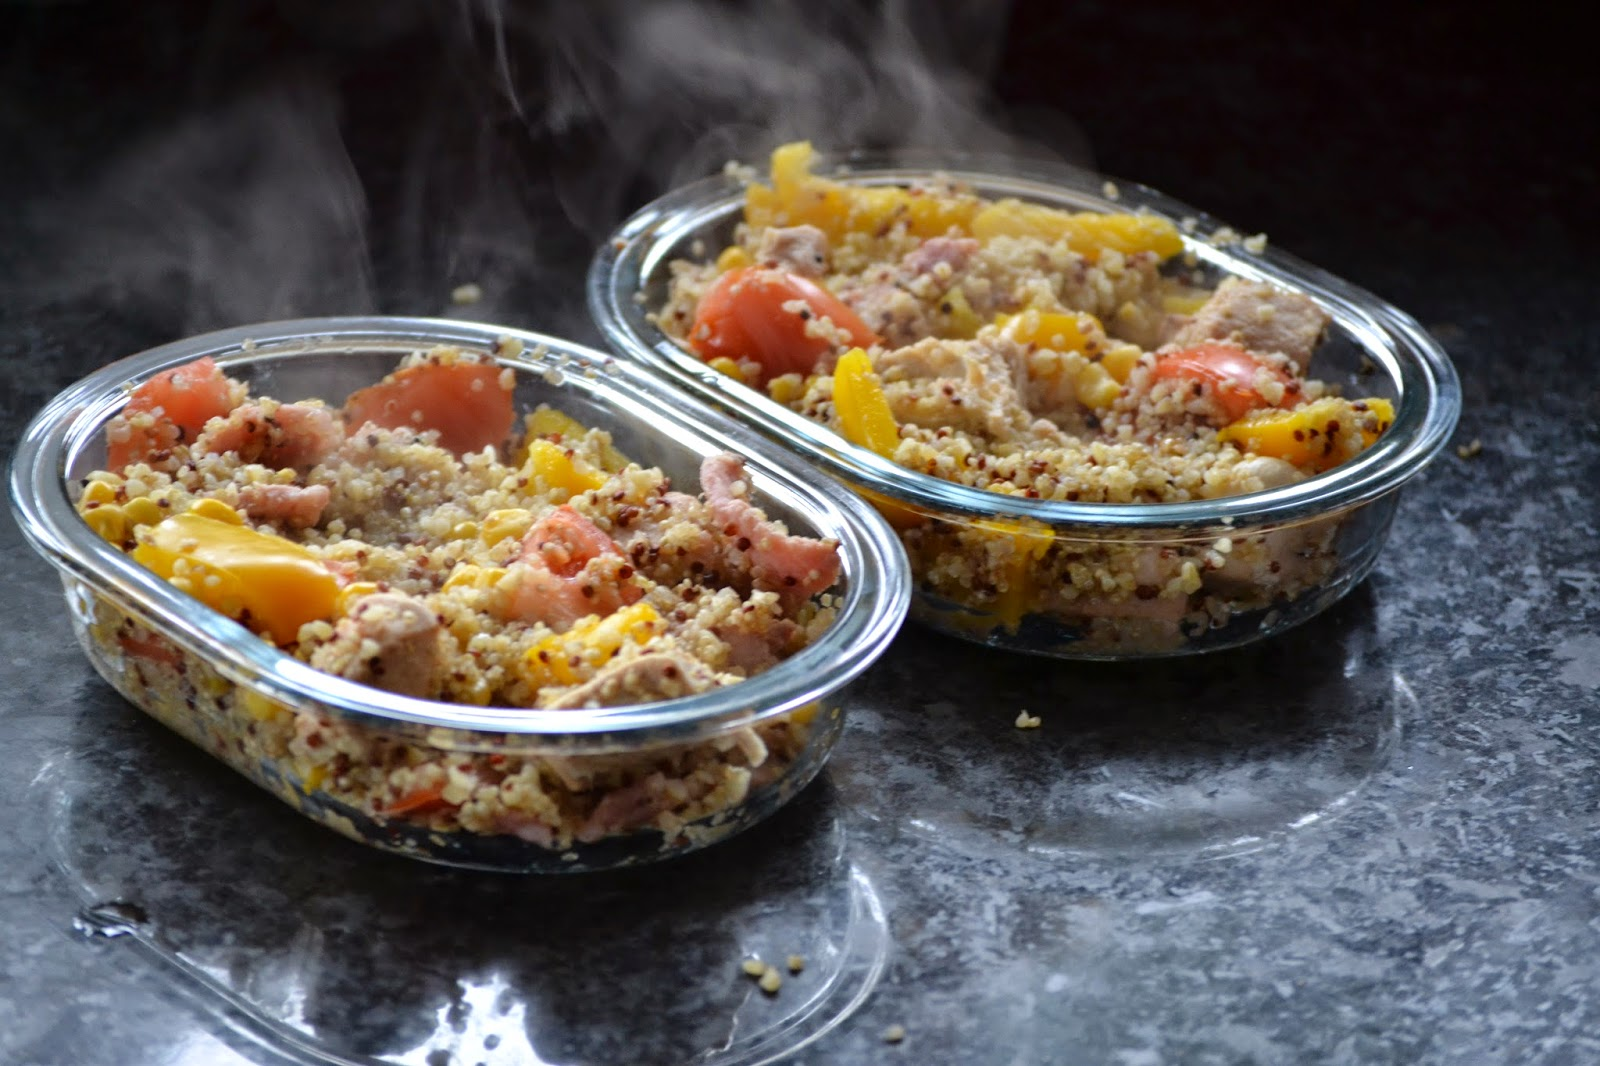 Quinoa and Bulgar Wheat Bake